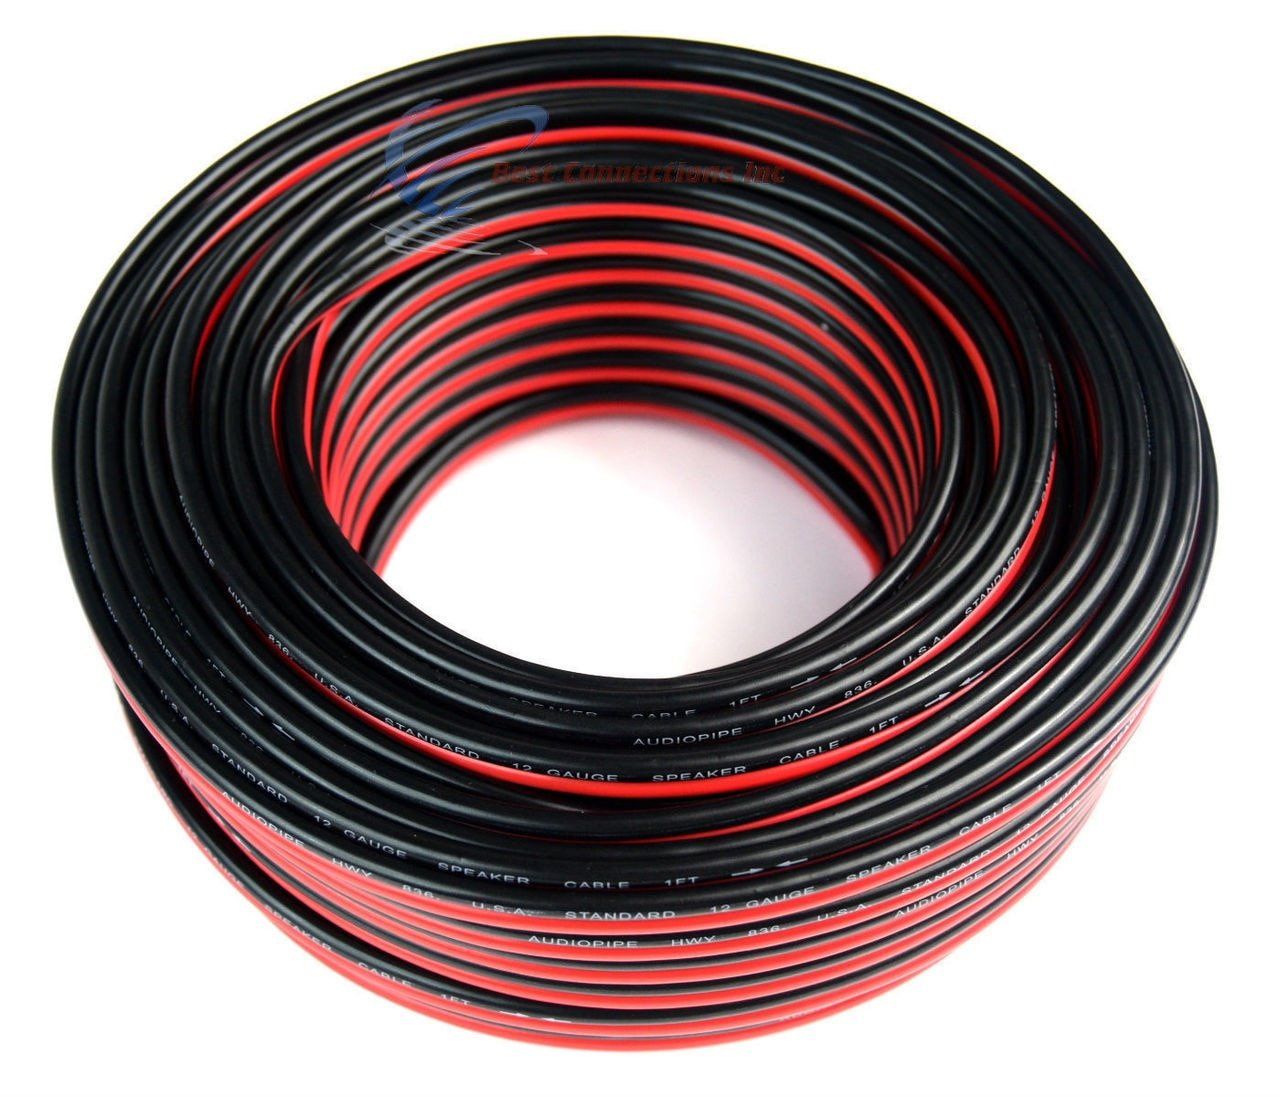 Best Rated In Car Speaker Wire Helpful Customer Reviews Trailer Light Wiring Harness 4 Flat 25ft To Redo Lights Audiopipe 12 Ga Gauge Red Black Stranded 2 Conductor For Home Audio